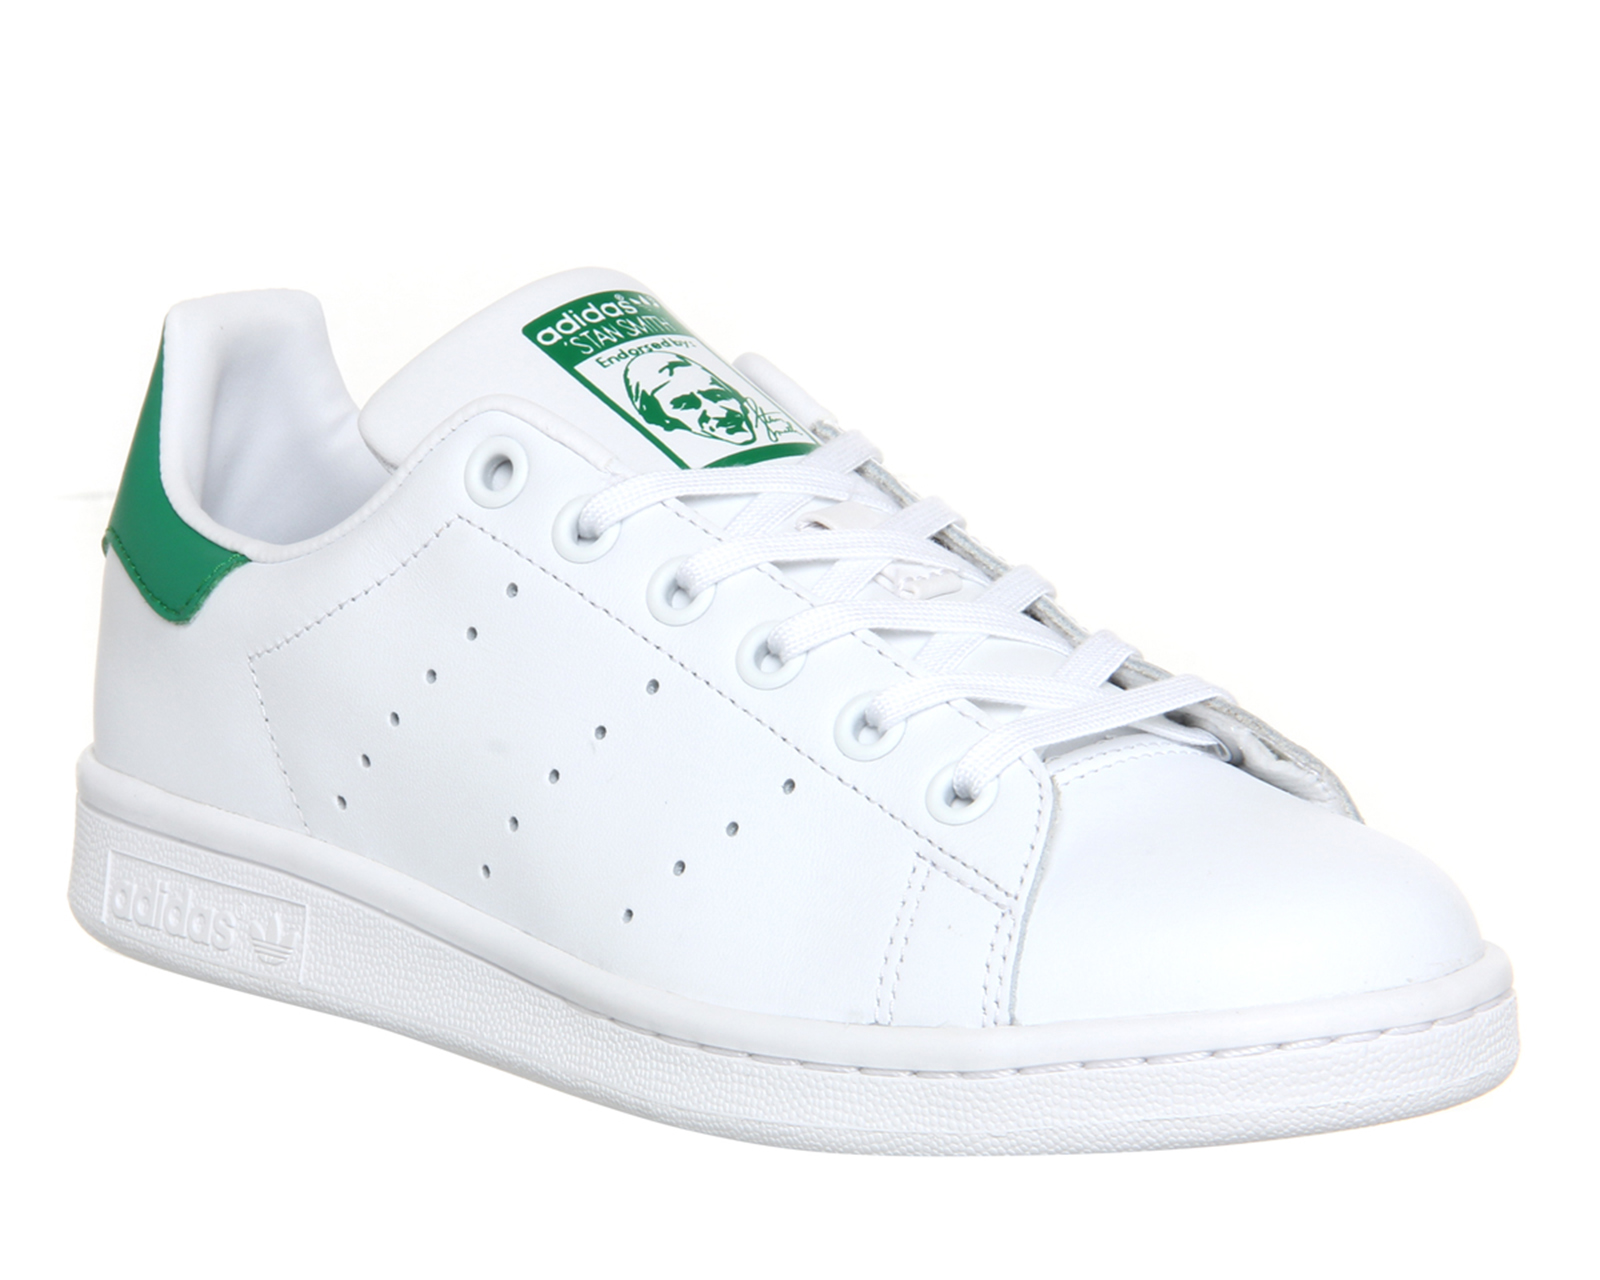 mens adidas stan smith core white green trainers shoes ebay. Black Bedroom Furniture Sets. Home Design Ideas